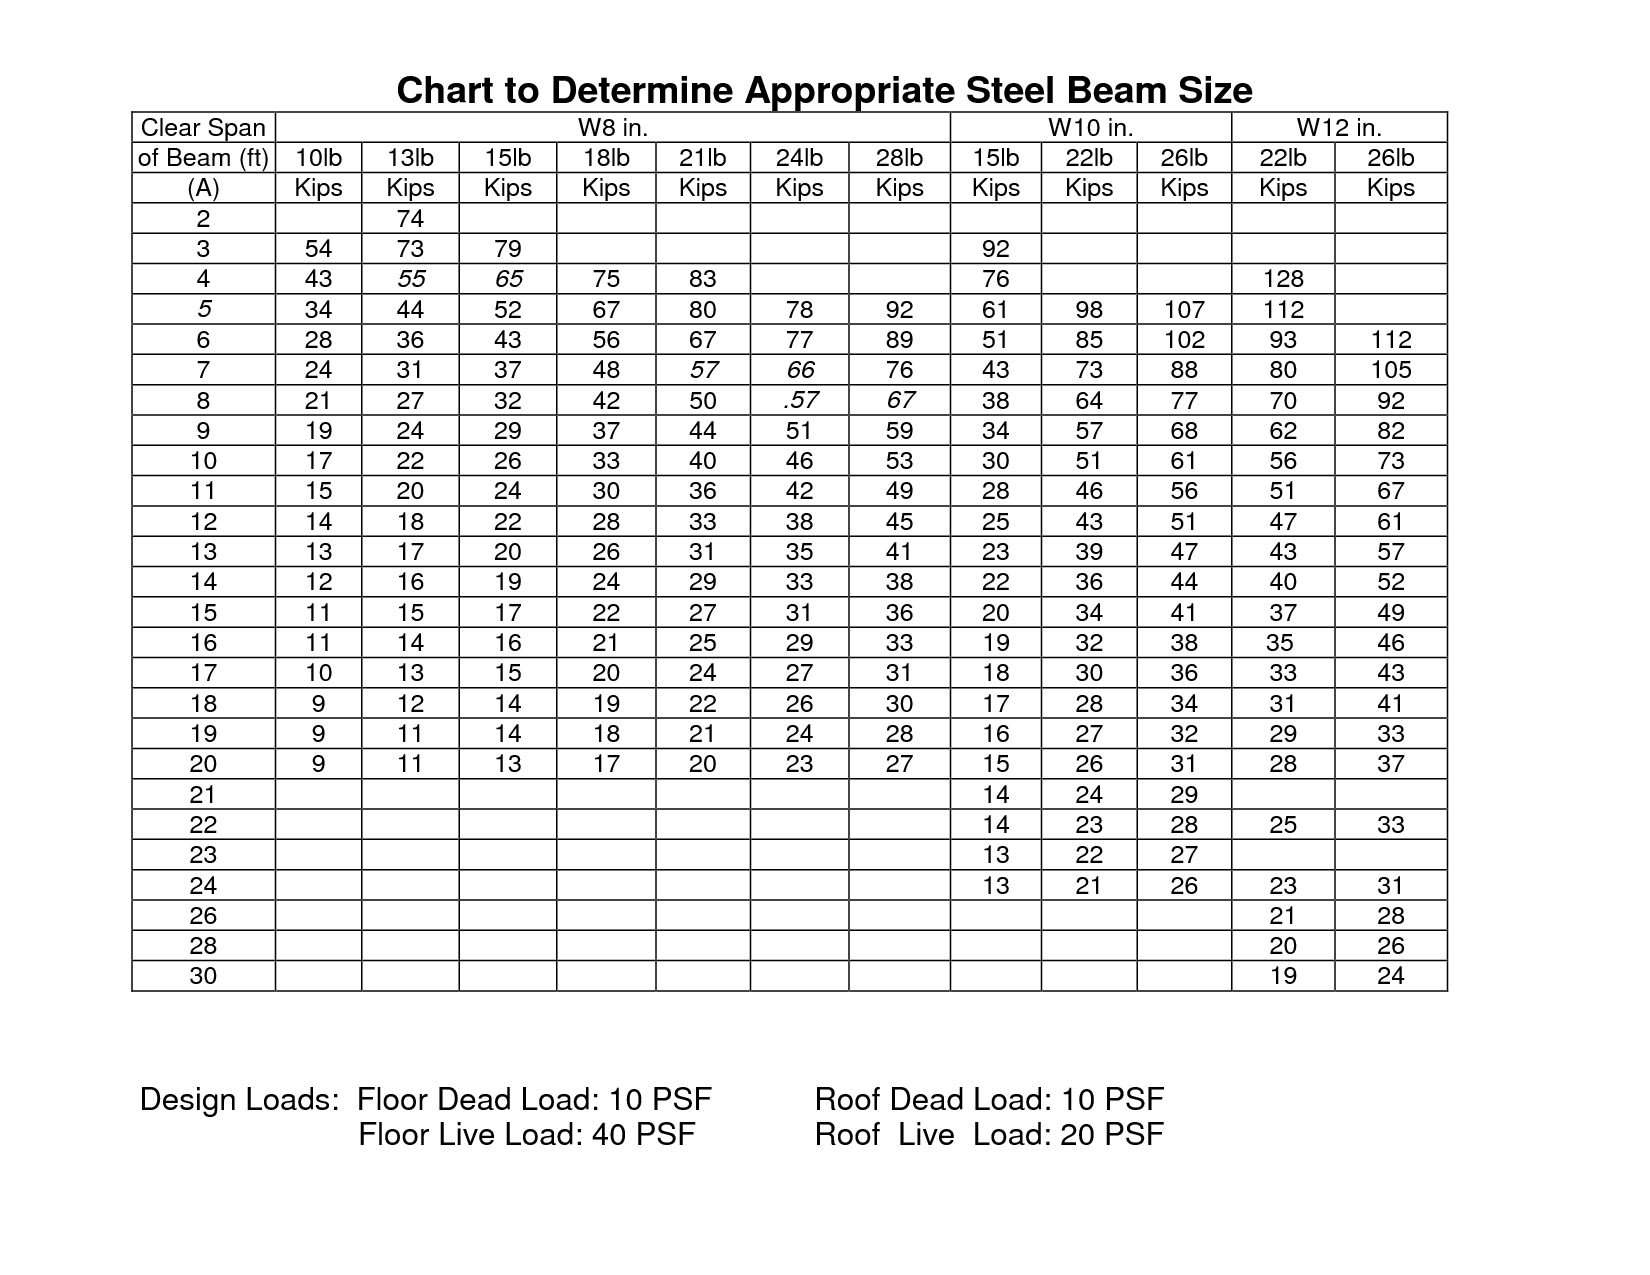 Steel i beam sizes chart google search house ideas pinterest steel i beam sizes chart google search geenschuldenfo Choice Image